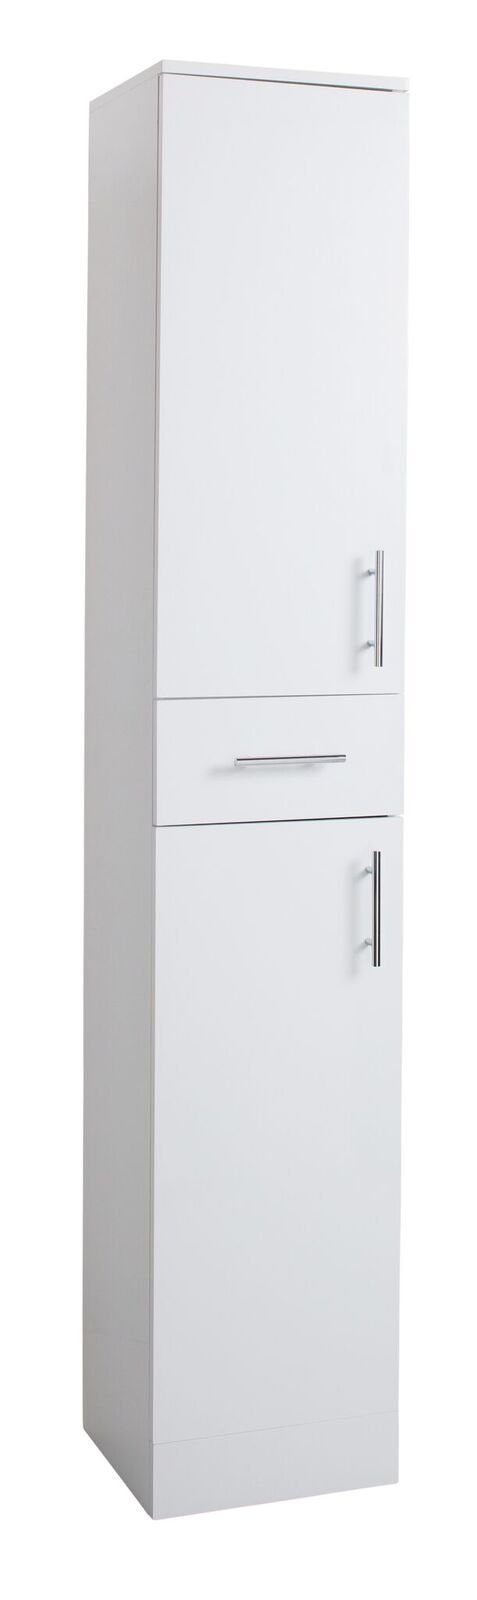 Cassellie Kass 2-Doors & 1-Drawer Tall Storage unit - 1900mm High x 300mm Deep - White